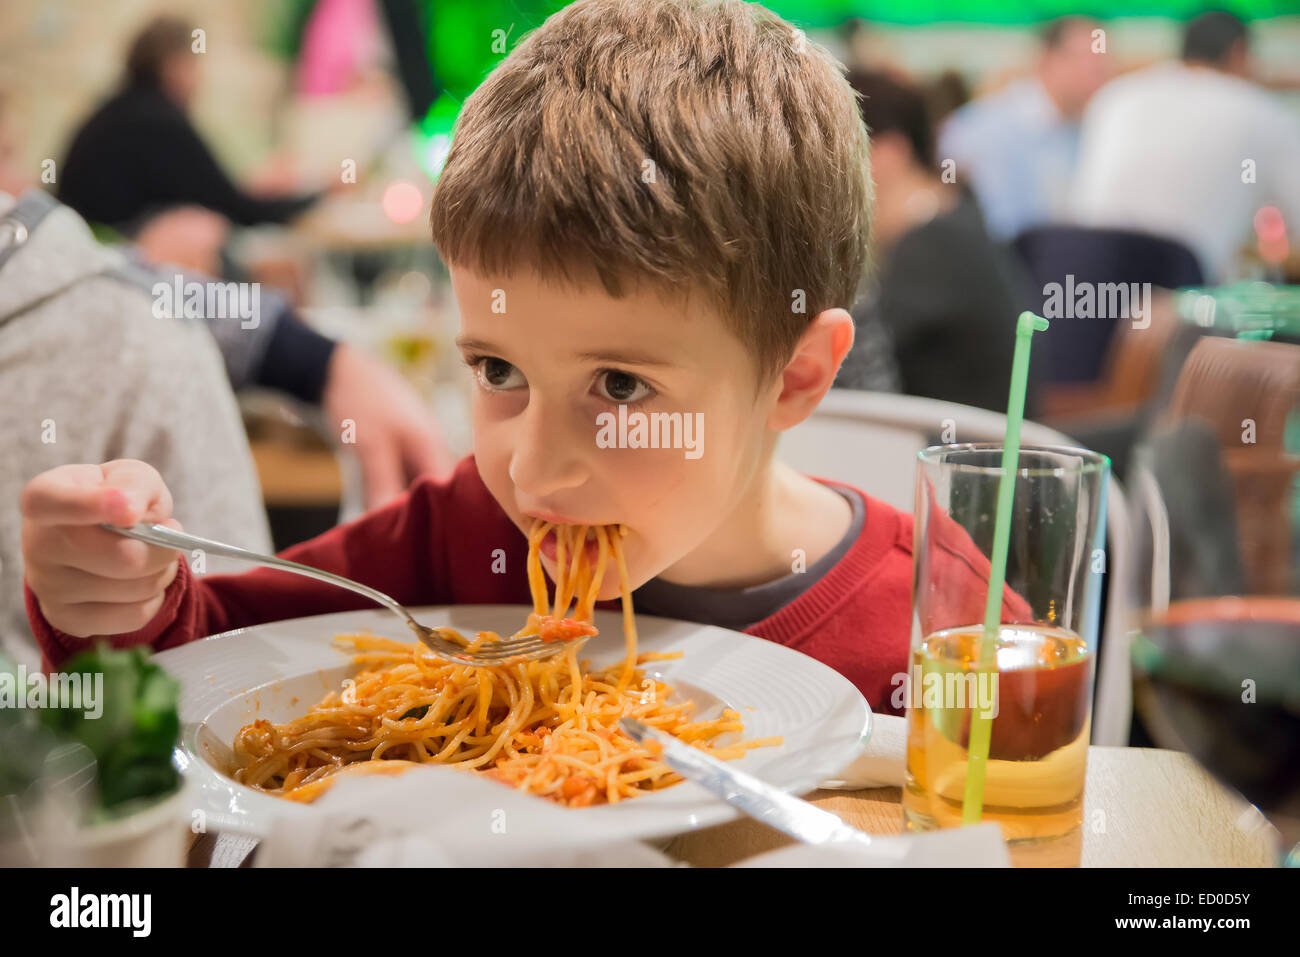 Boy sitting in a restaurant eating spaghetti - Stock Image